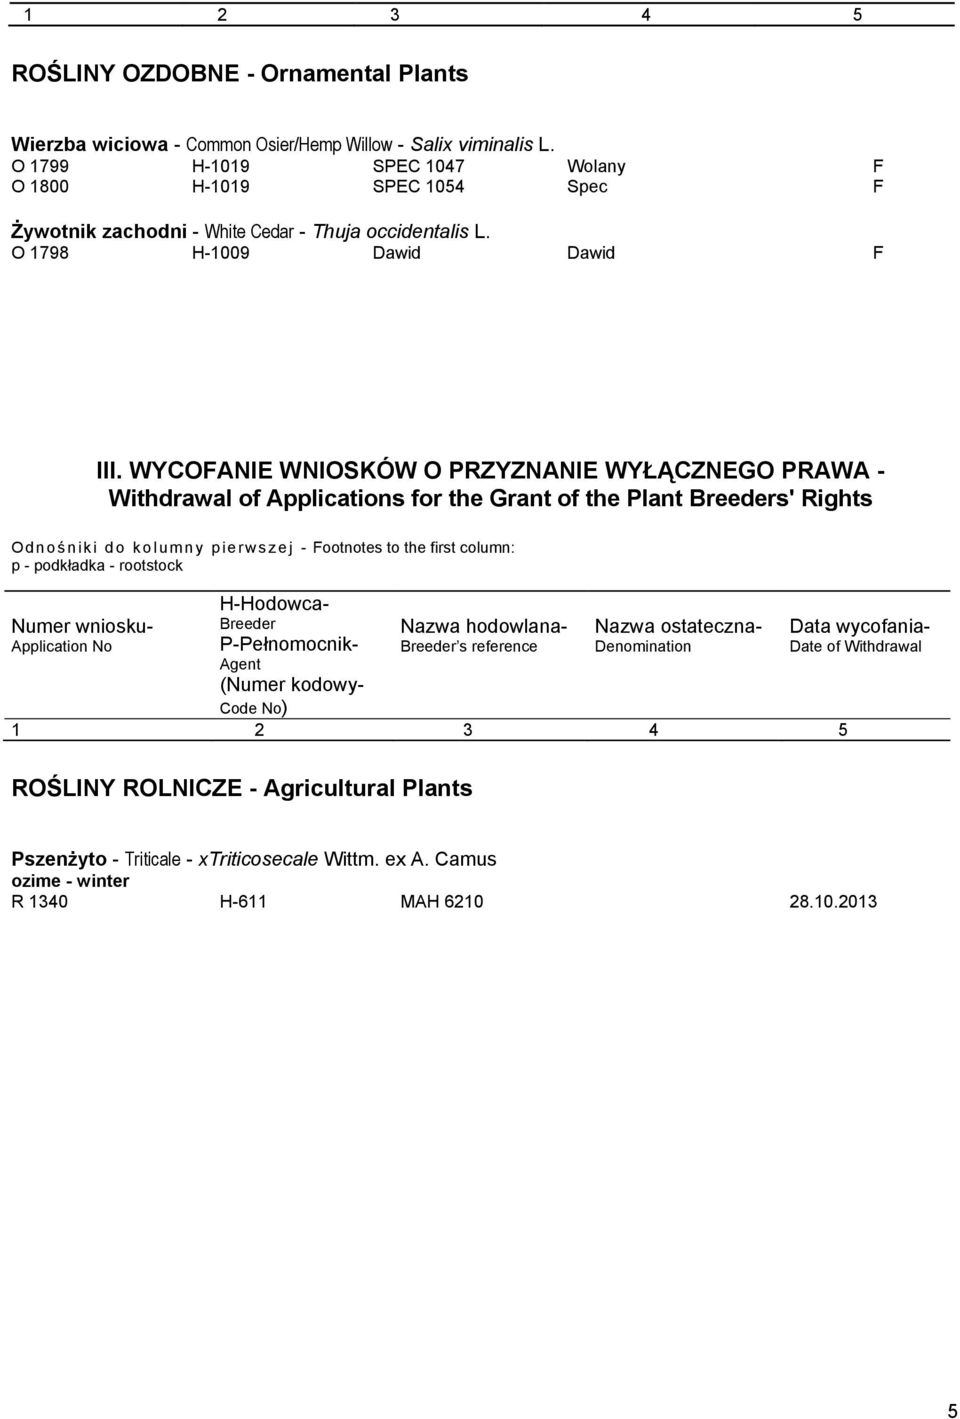 WYCOFANIE WNIOSKÓW O PRZYZNANIE WYŁĄCZNEGO PRAWA - Withdrawal of Applications for the Grant of the Plant Breeders' Rights Odnośniki do kolumny pierws z e j - Footnotes to the first column: p -